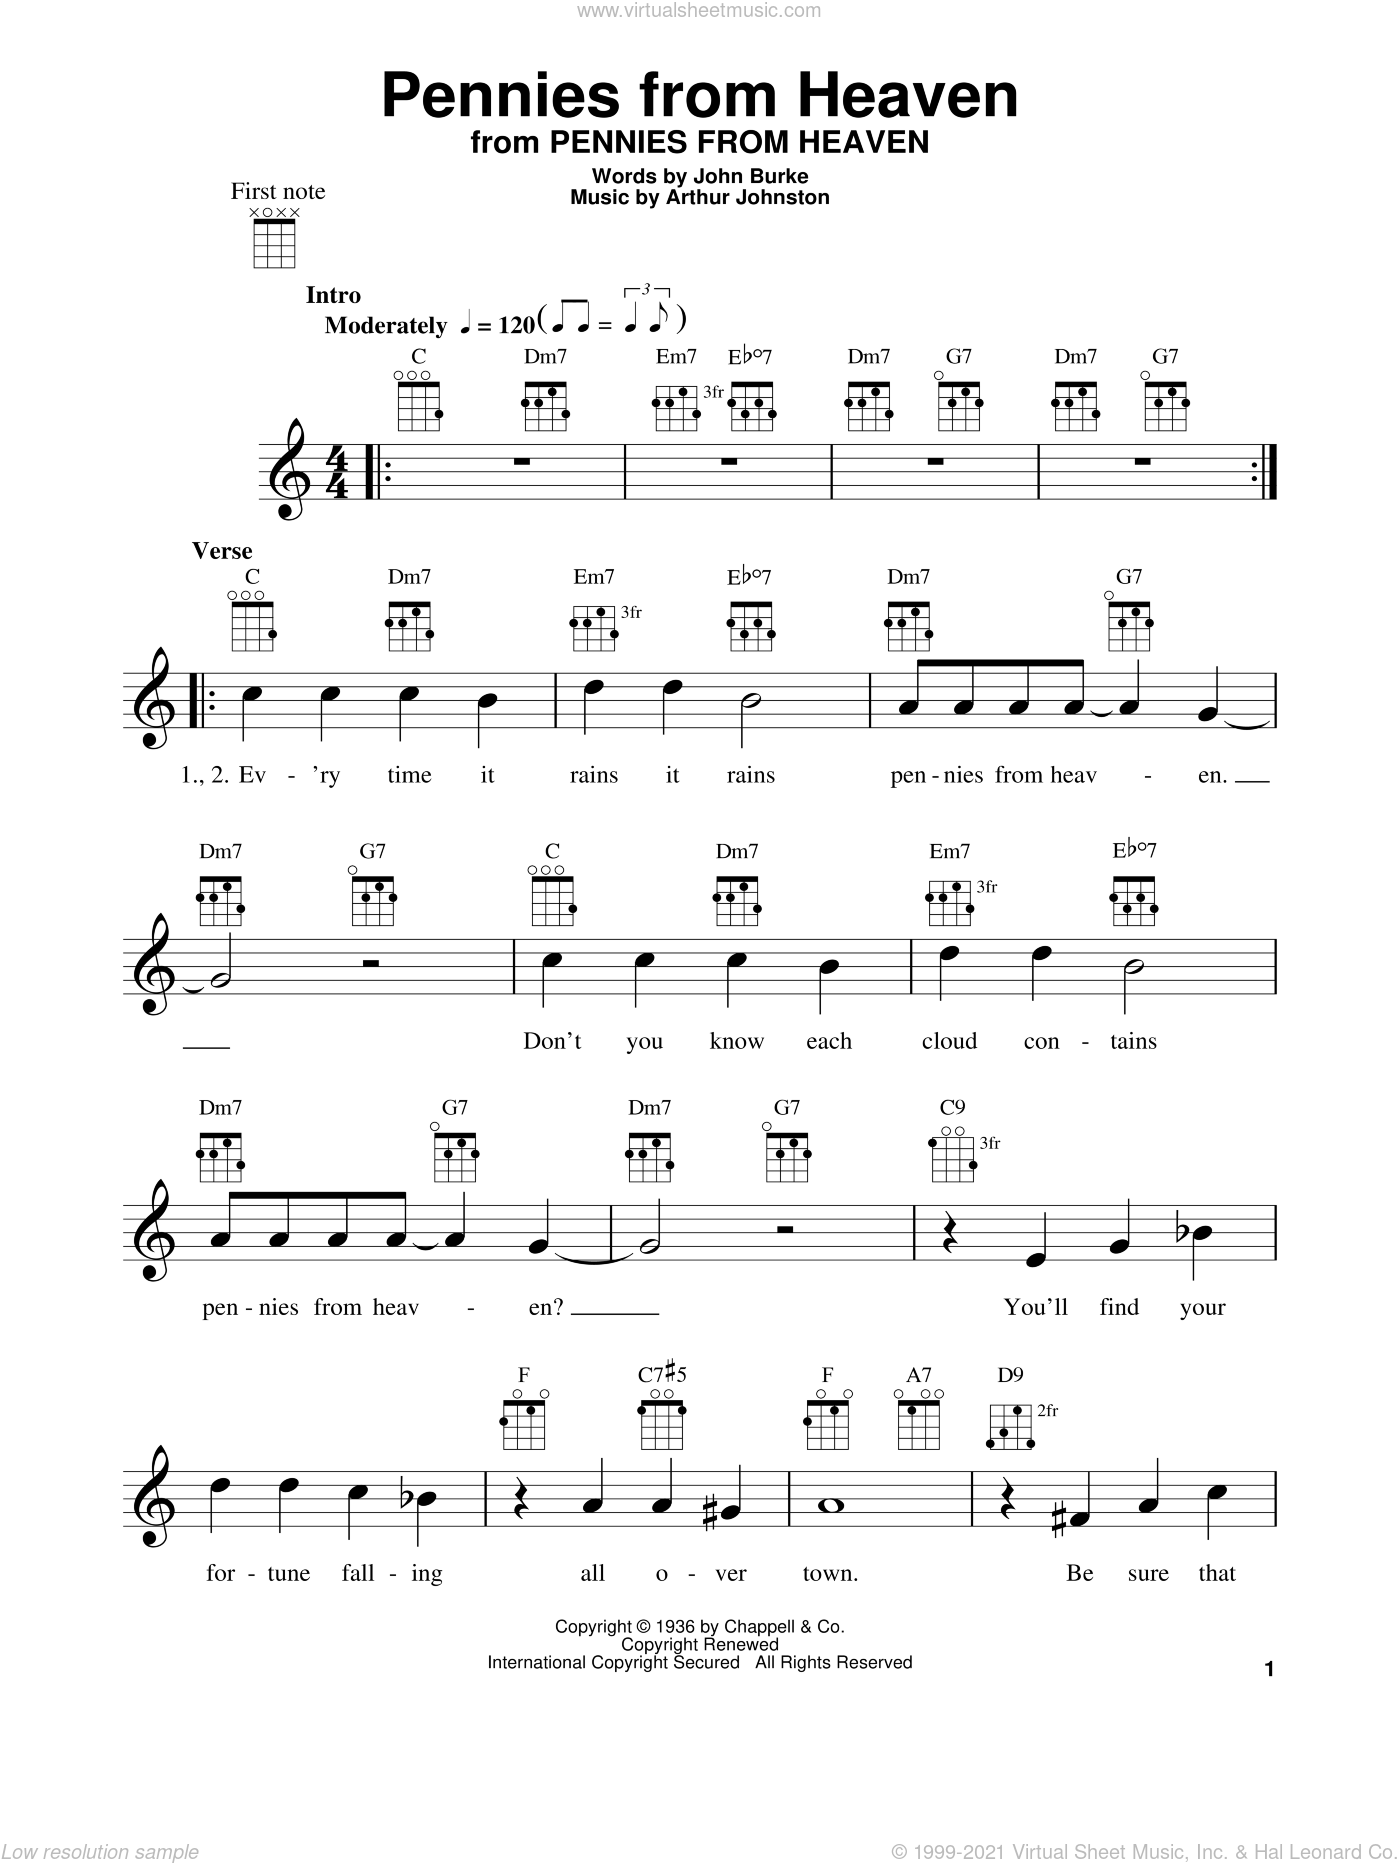 Pennies From Heaven sheet music for ukulele by John Burke, Bing Crosby and Arthur Johnston. Score Image Preview.